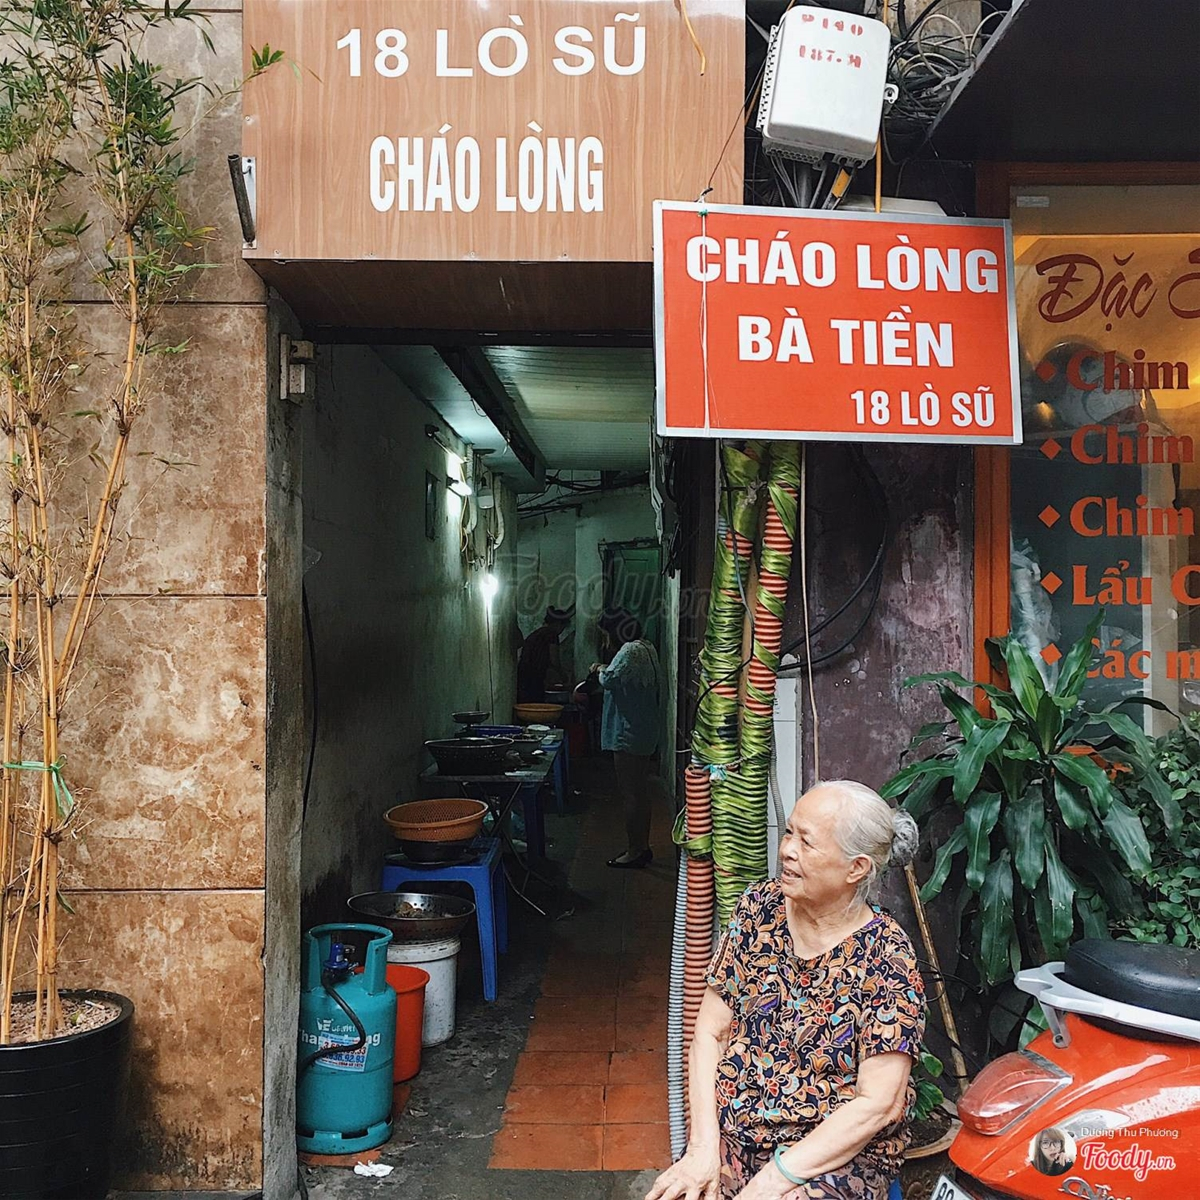 Chao long ngon Ha Noi